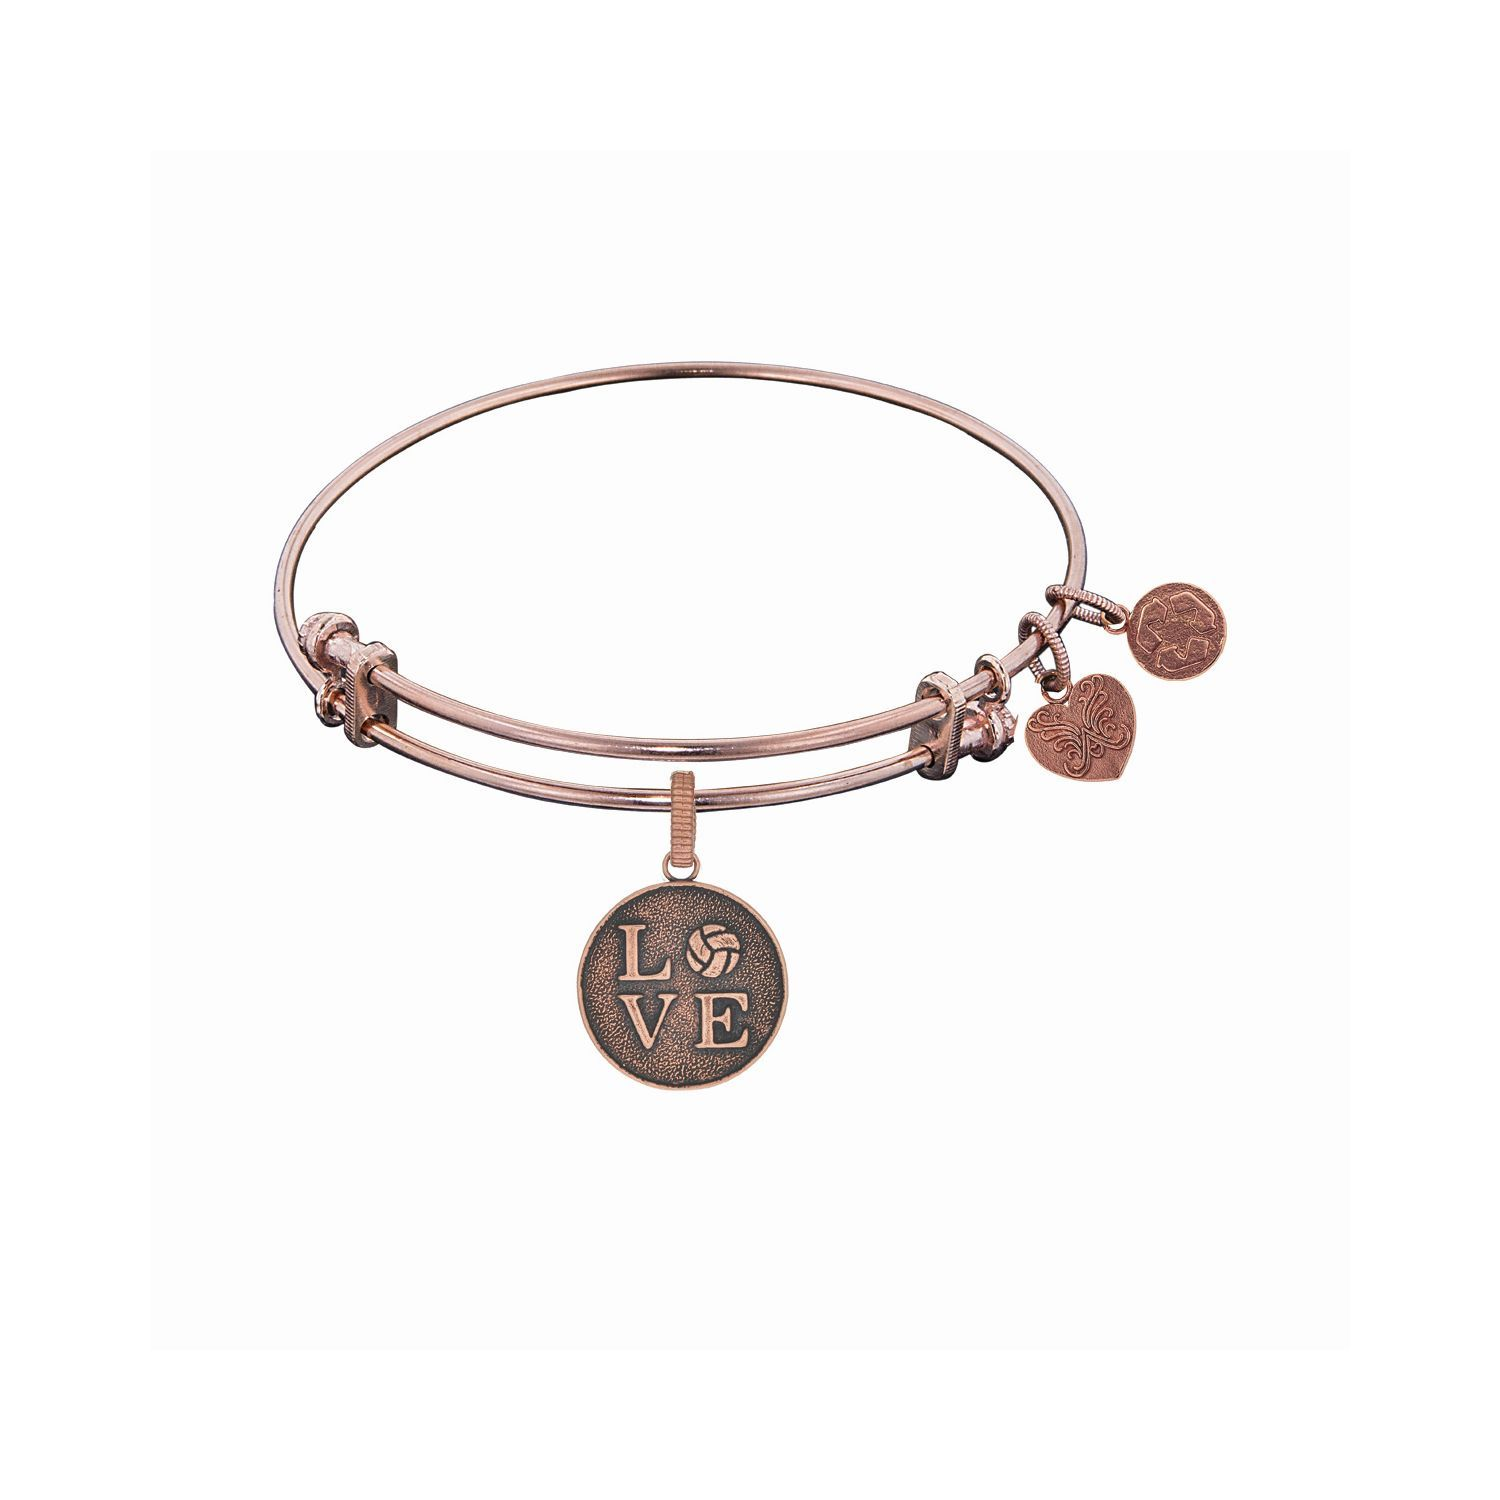 Love Volleyball Bangle | Angelica Collection #PGEL1266 (Pink Tone) $25.00 This adjustable bracelet is the perfect gift for the #VolleyballMOM or the #VolleyballSuperstar!  Available at ANDREW GALLAGHER JEWELERS, NEWARK, DELAWARE (302) 368-3380